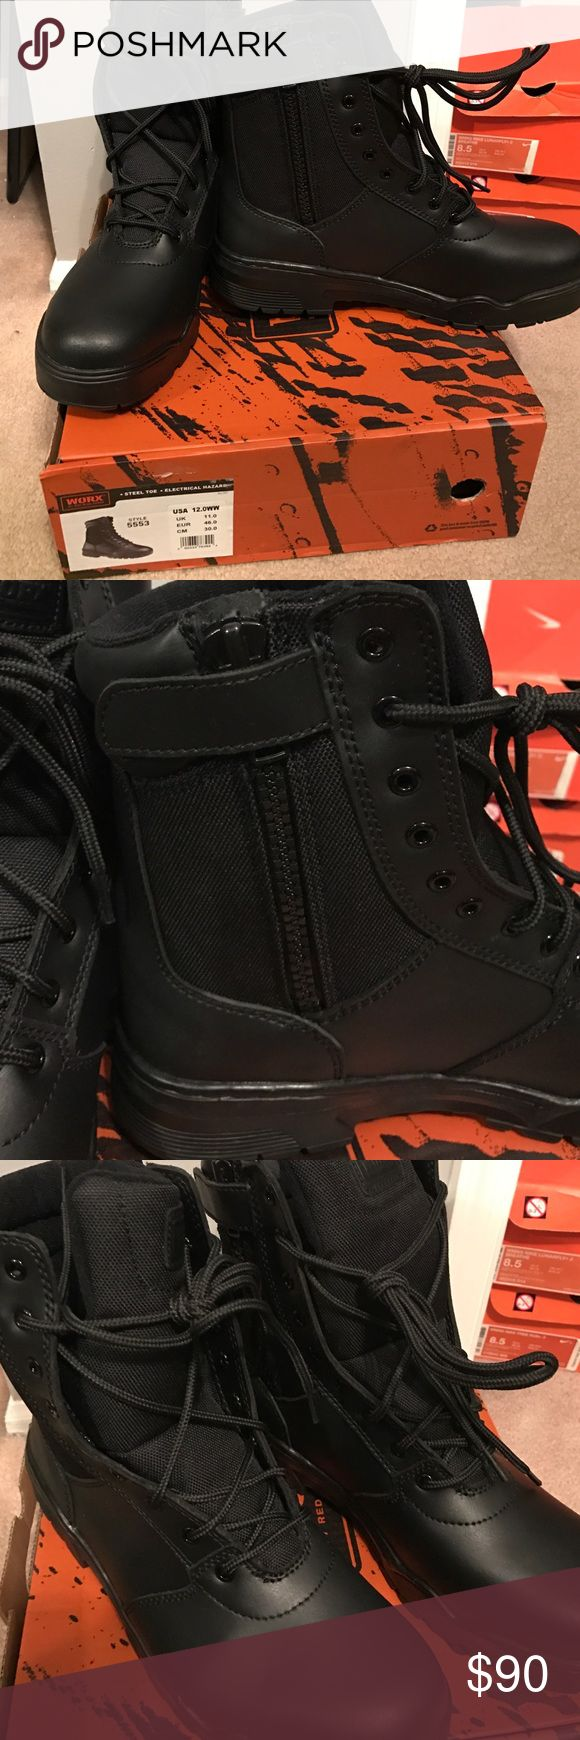 """Black Steel Toe Boots - Worx by Red Wing Shoes Black steel toe boots with inside zip! New with box, never worn--perfect condition! Brand is """"Worx by Red Wing Shoes."""" Style 5553. Size 12.0WW. If you're familiar with Red Wing, you know this is the brand to own. Boots possess steel toe. Electrical hazard sole and heel designed to reduce injury due to contact with electrically energized parts. Red Wing Shoes Shoes Boots"""